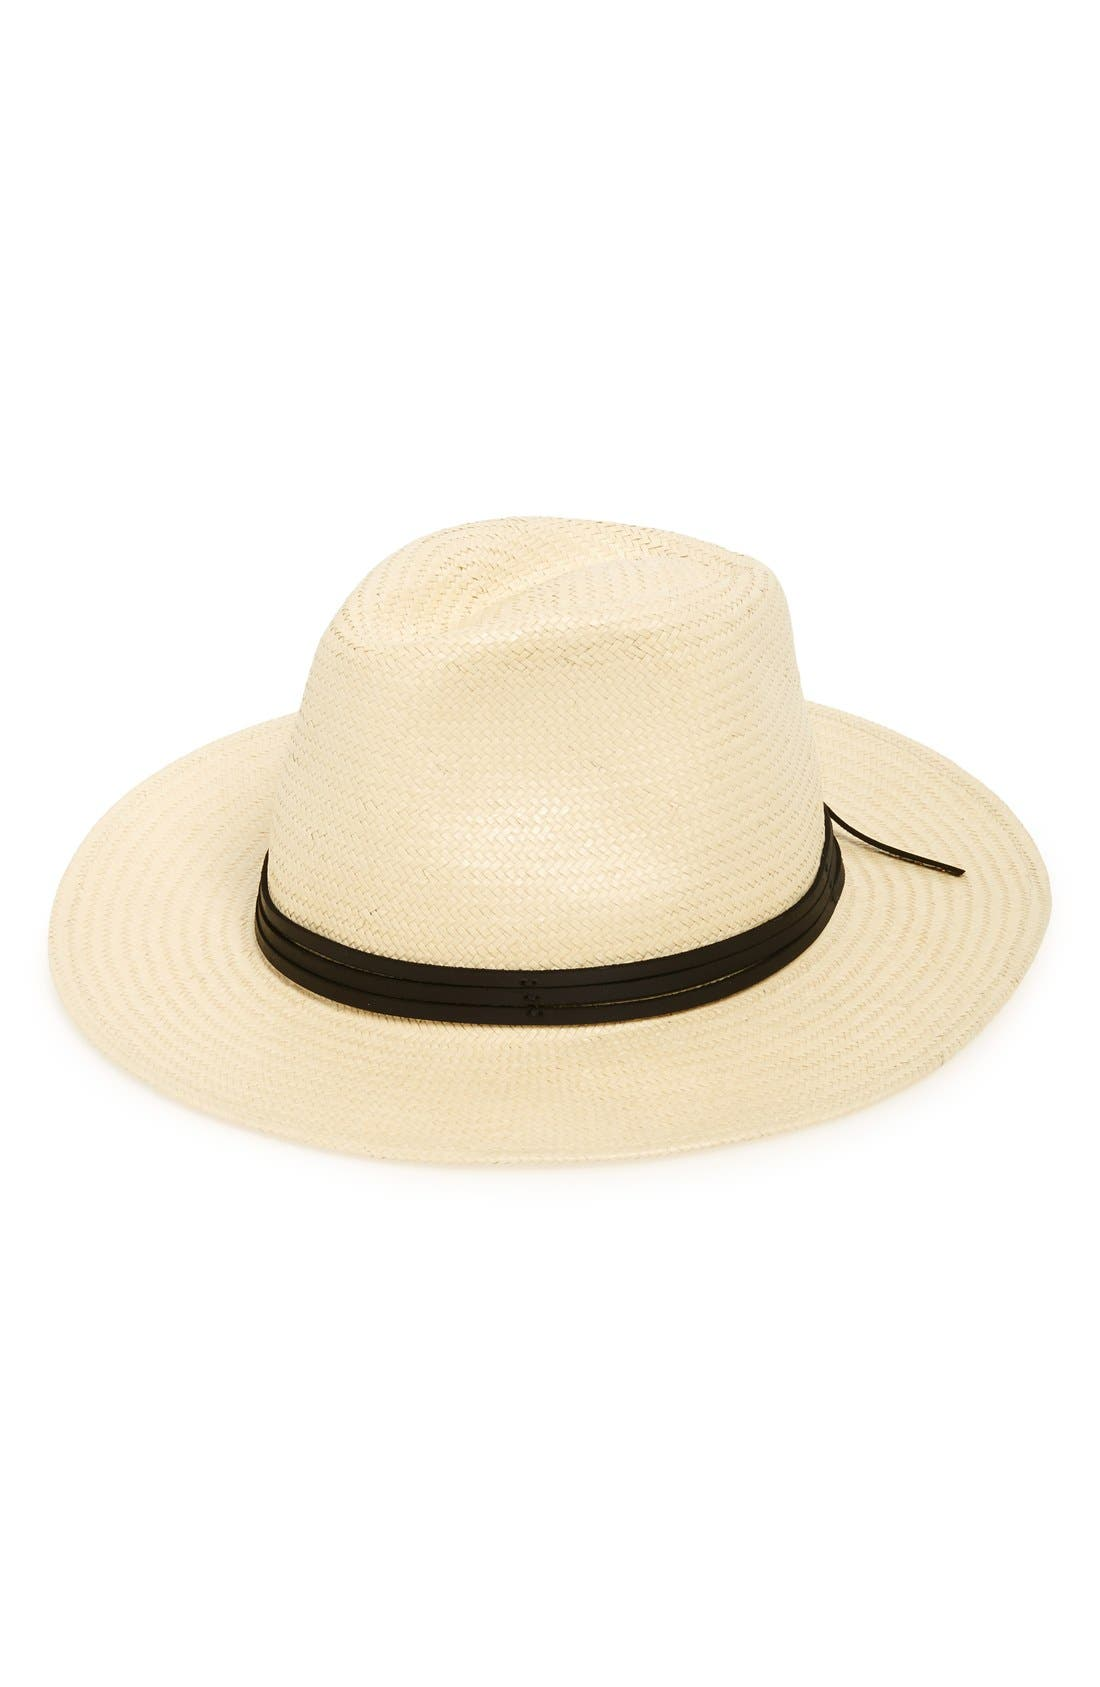 'Pacific' Straw Fedora,                         Main,                         color, 250